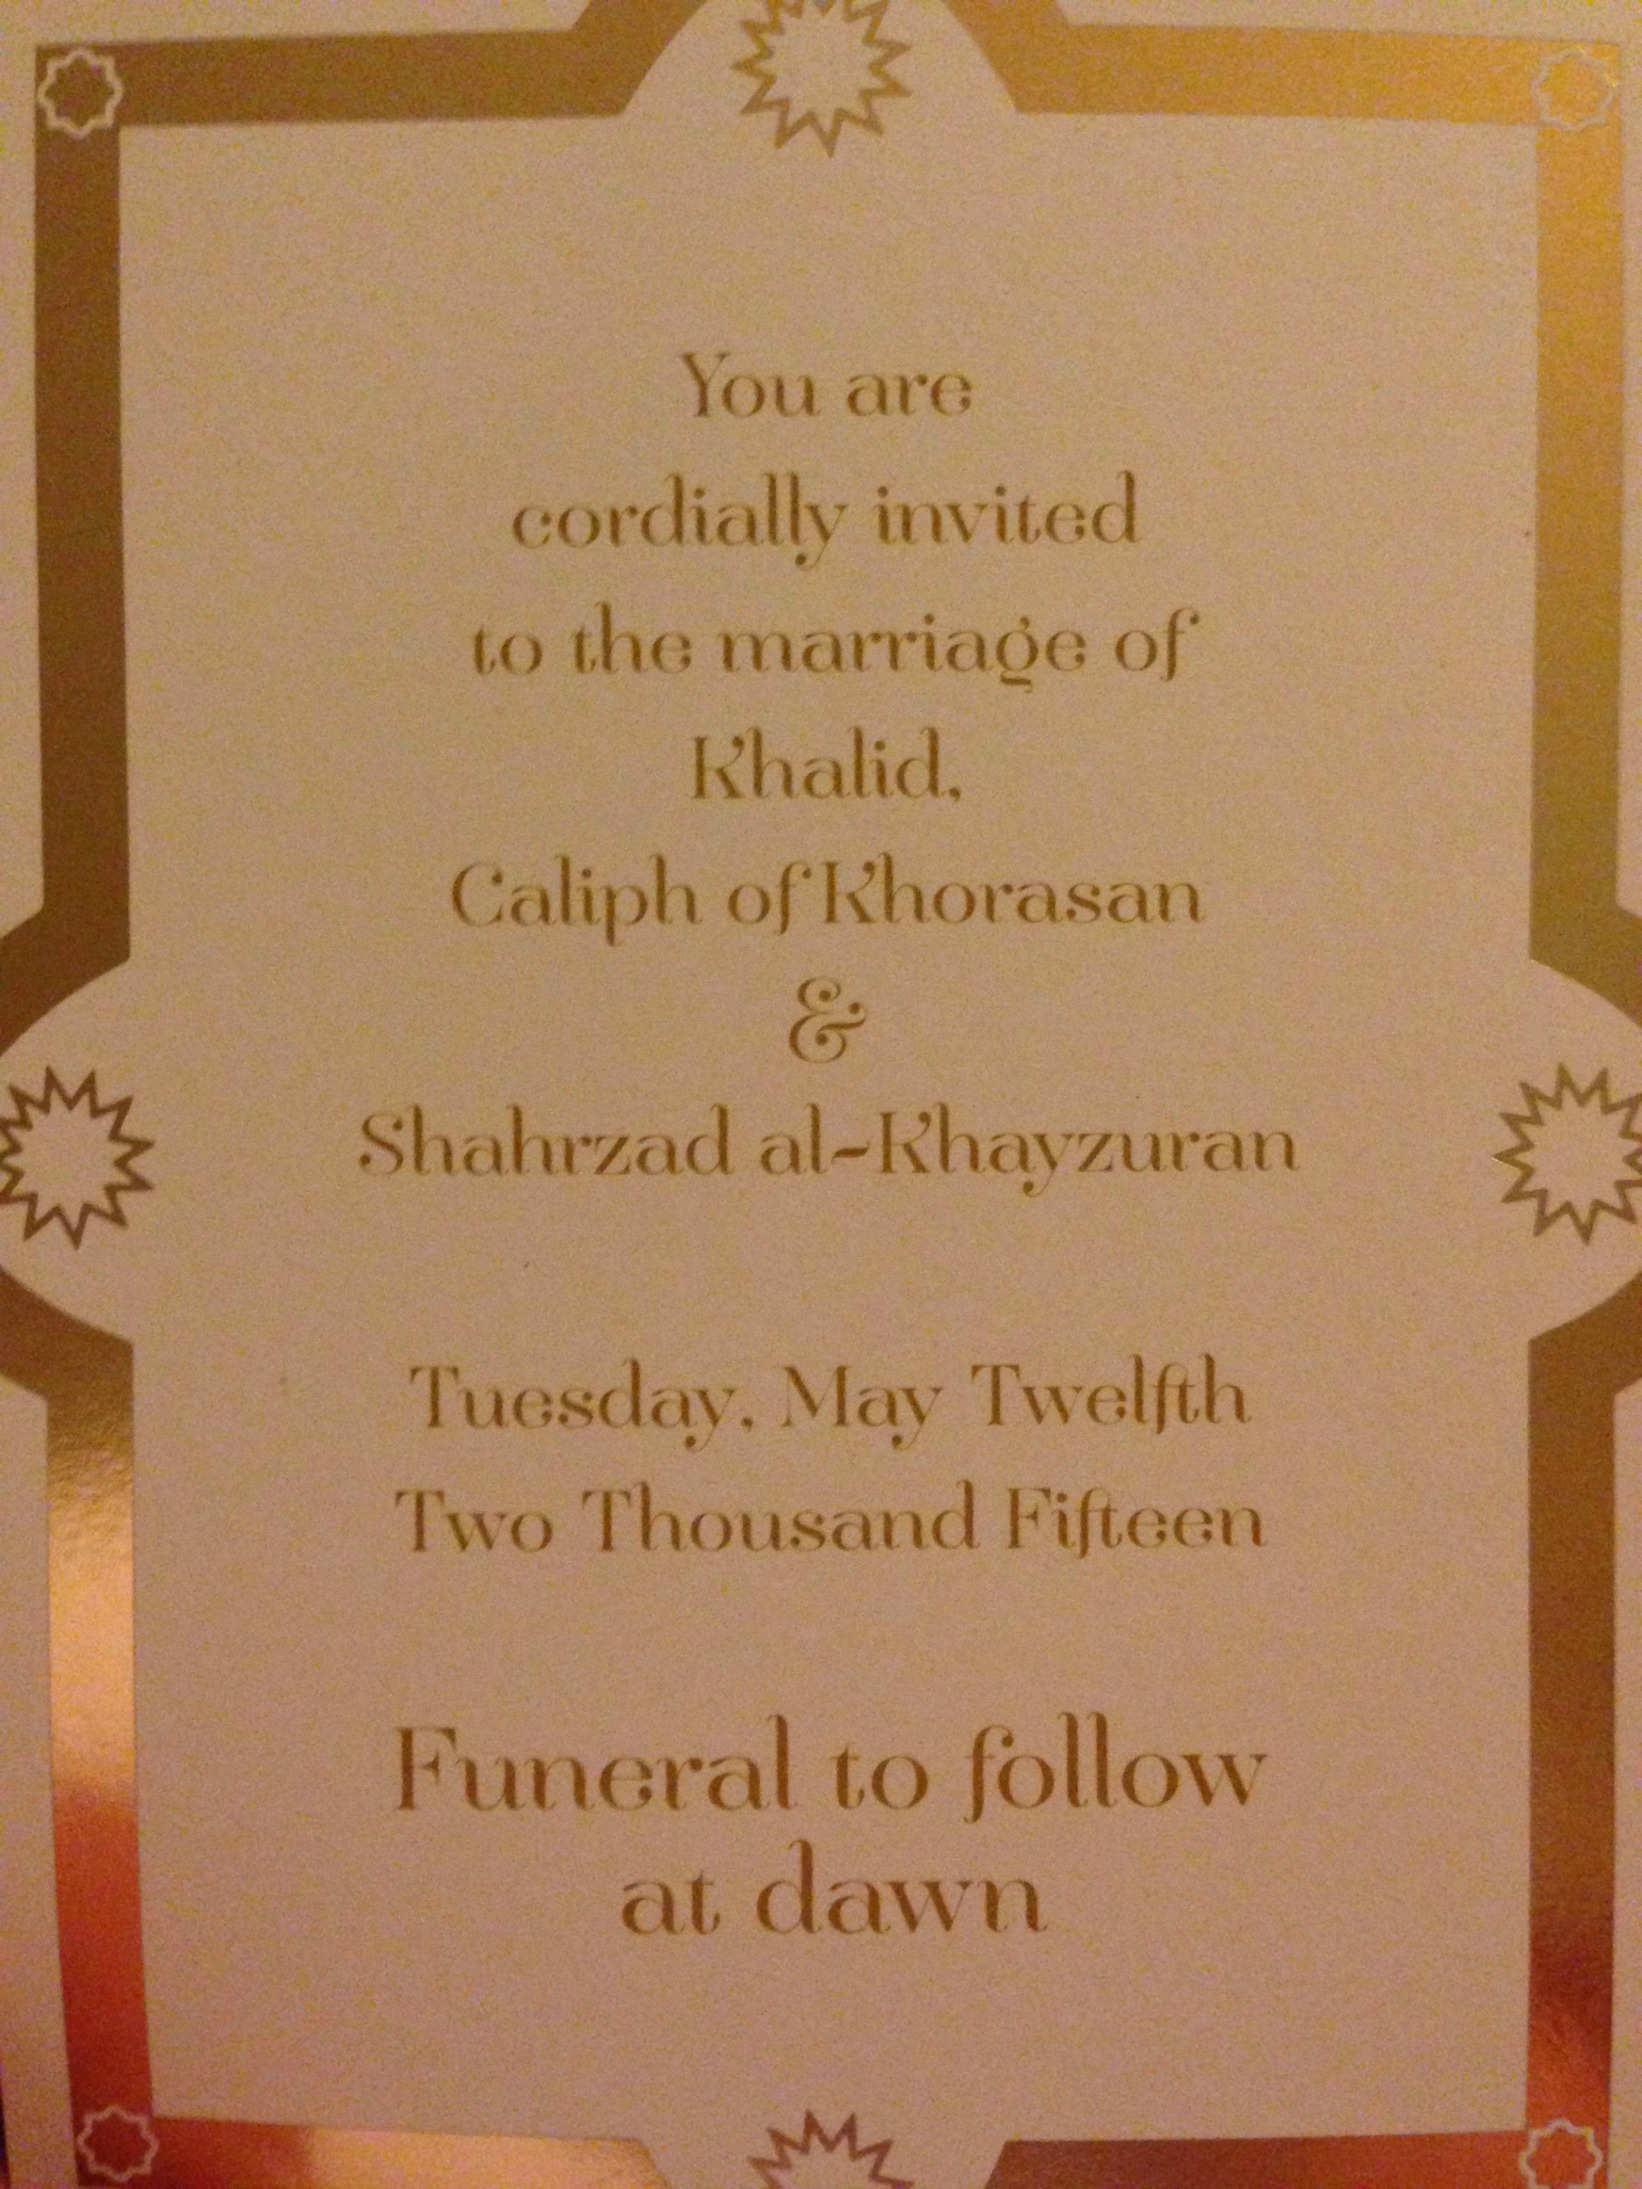 Awedding Invitation sent by the publisher made the book even more intriguing.